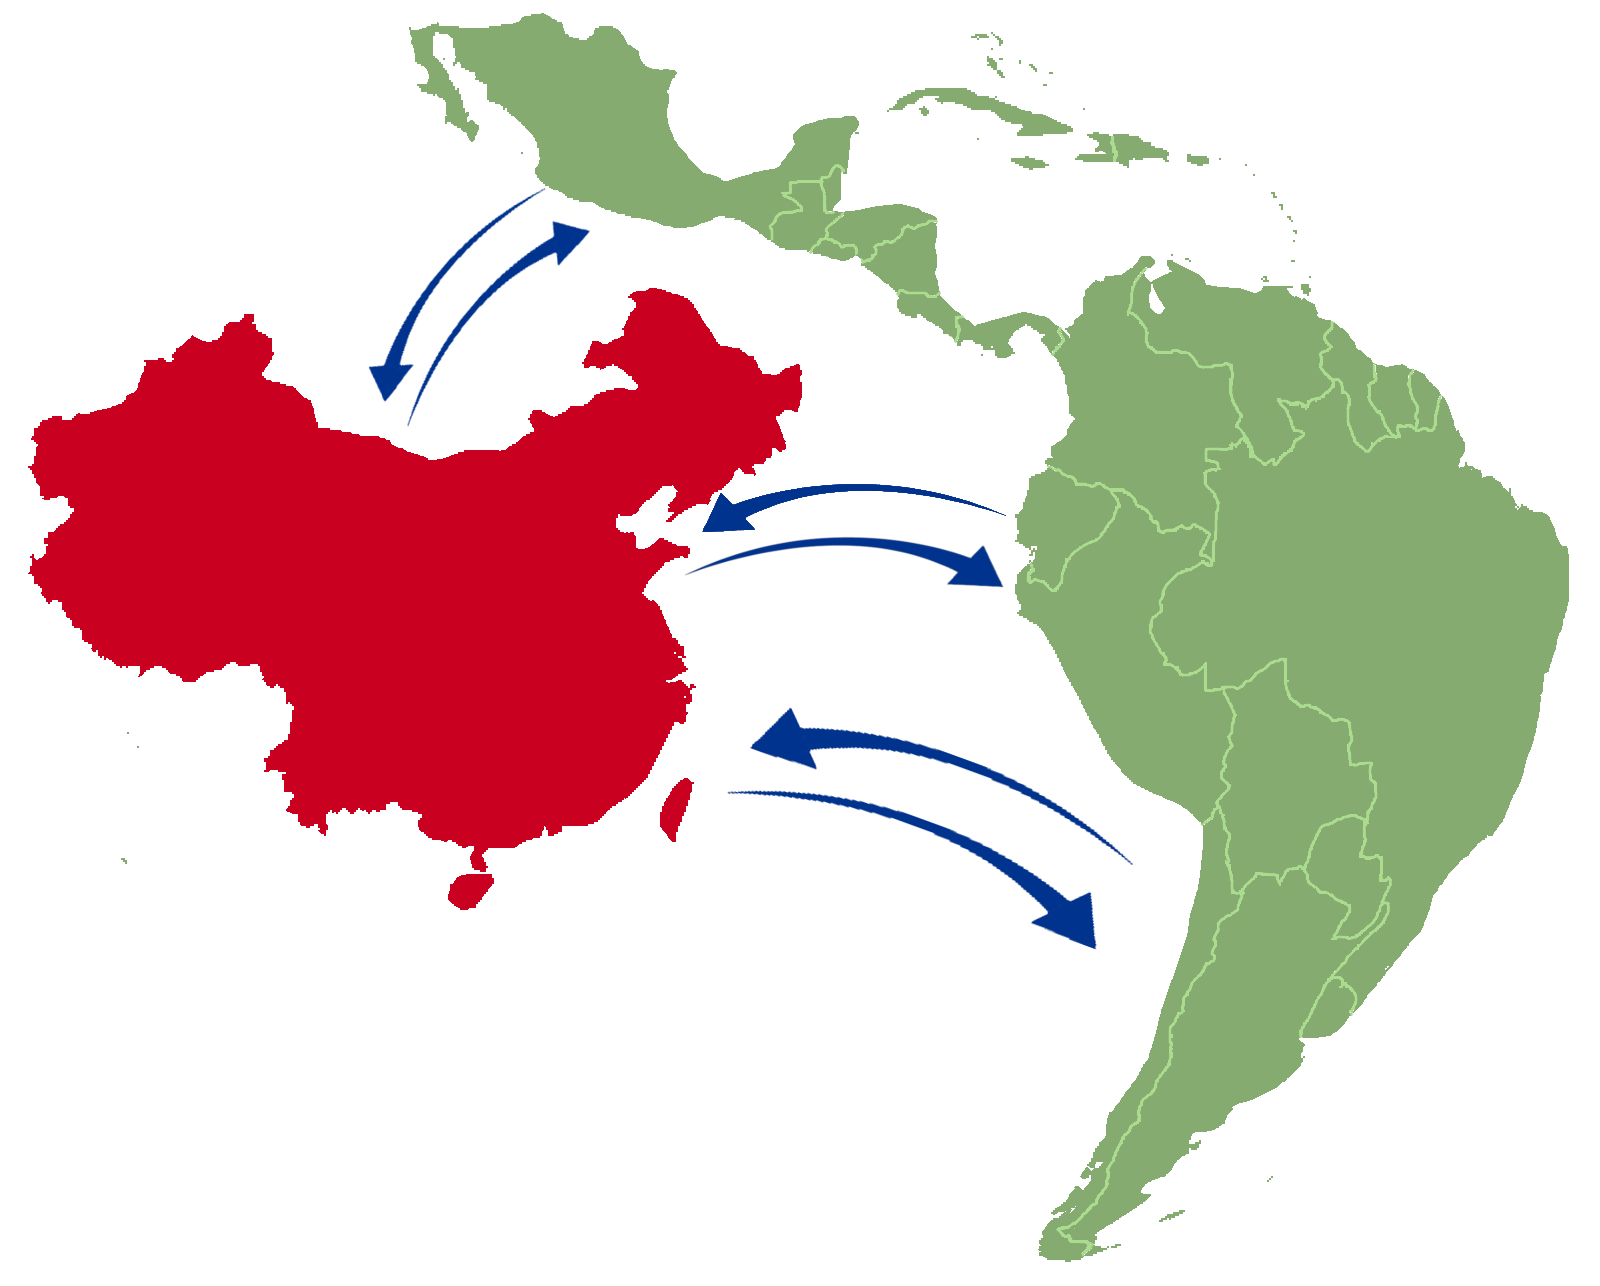 China In Latin America: Major Impacts And Avenues For Constructive Engagement A U.S. Perspective